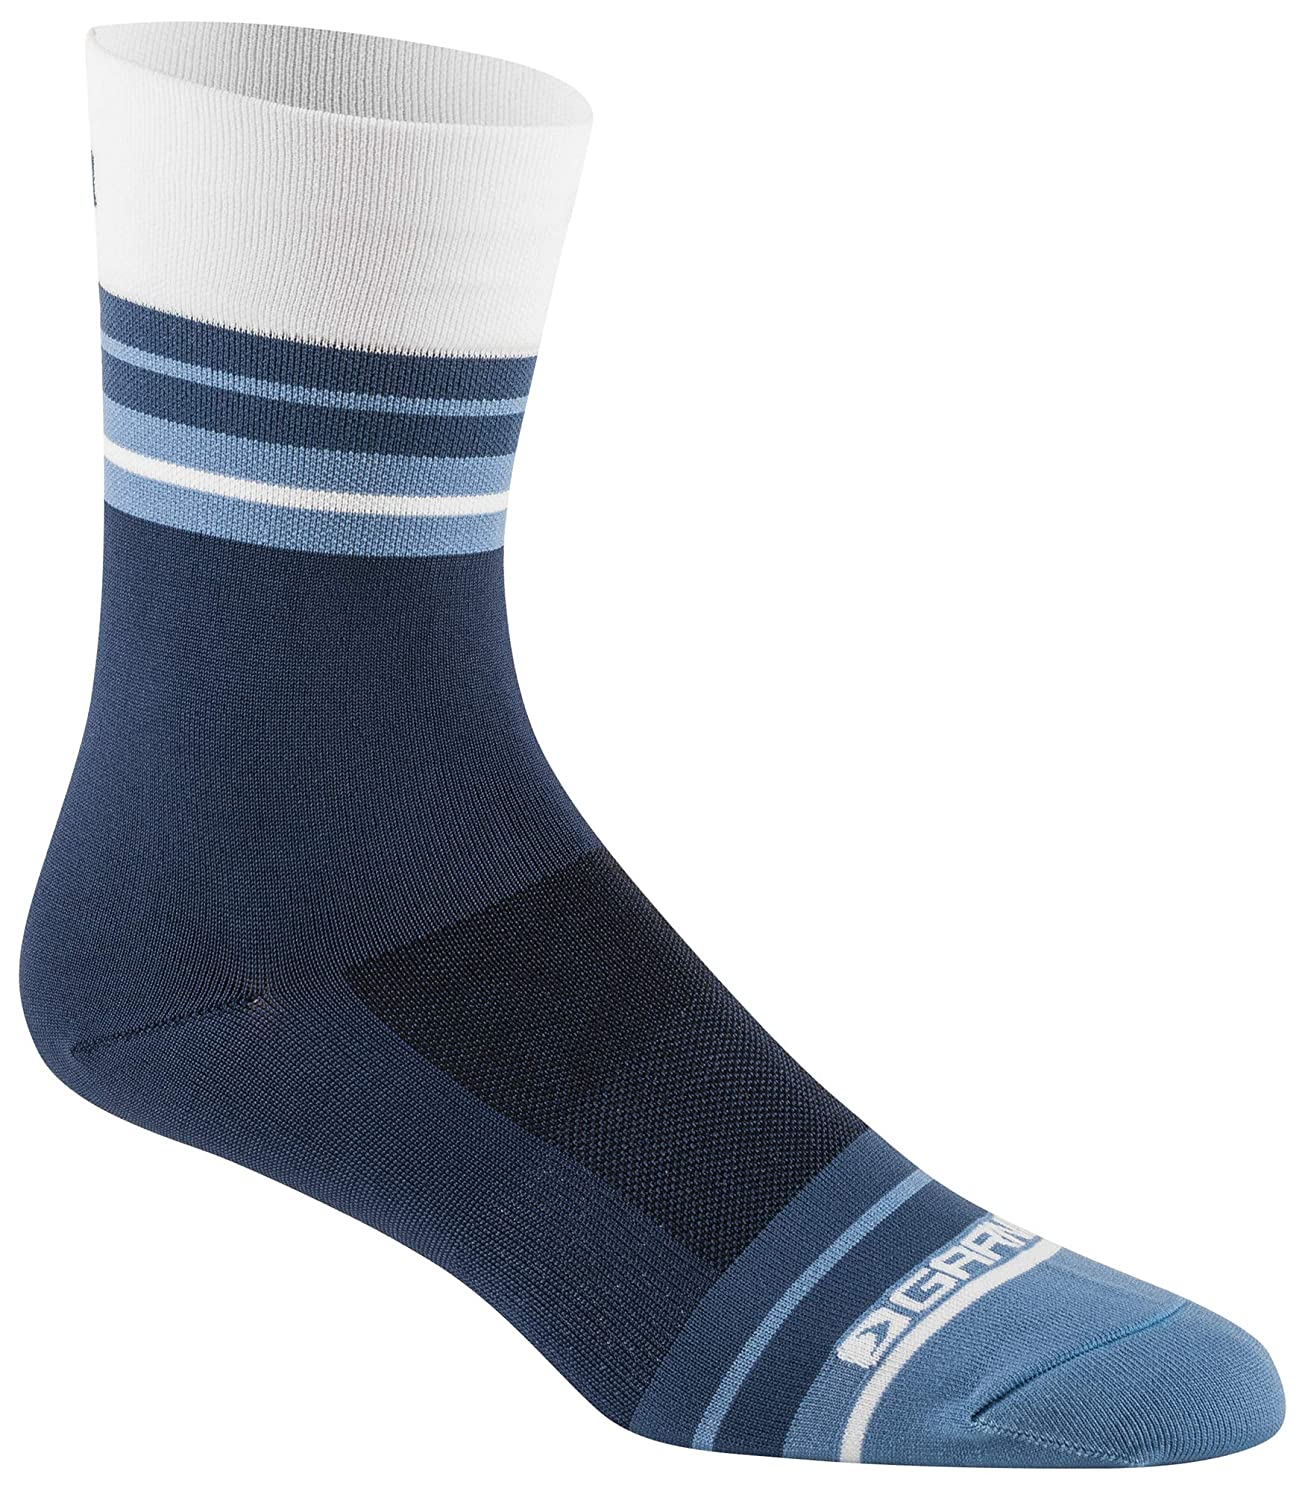 Louis Garneau Conti Long Performance Cycling Socks for Men and Women, Black/Navy/Blue, Small/Medium